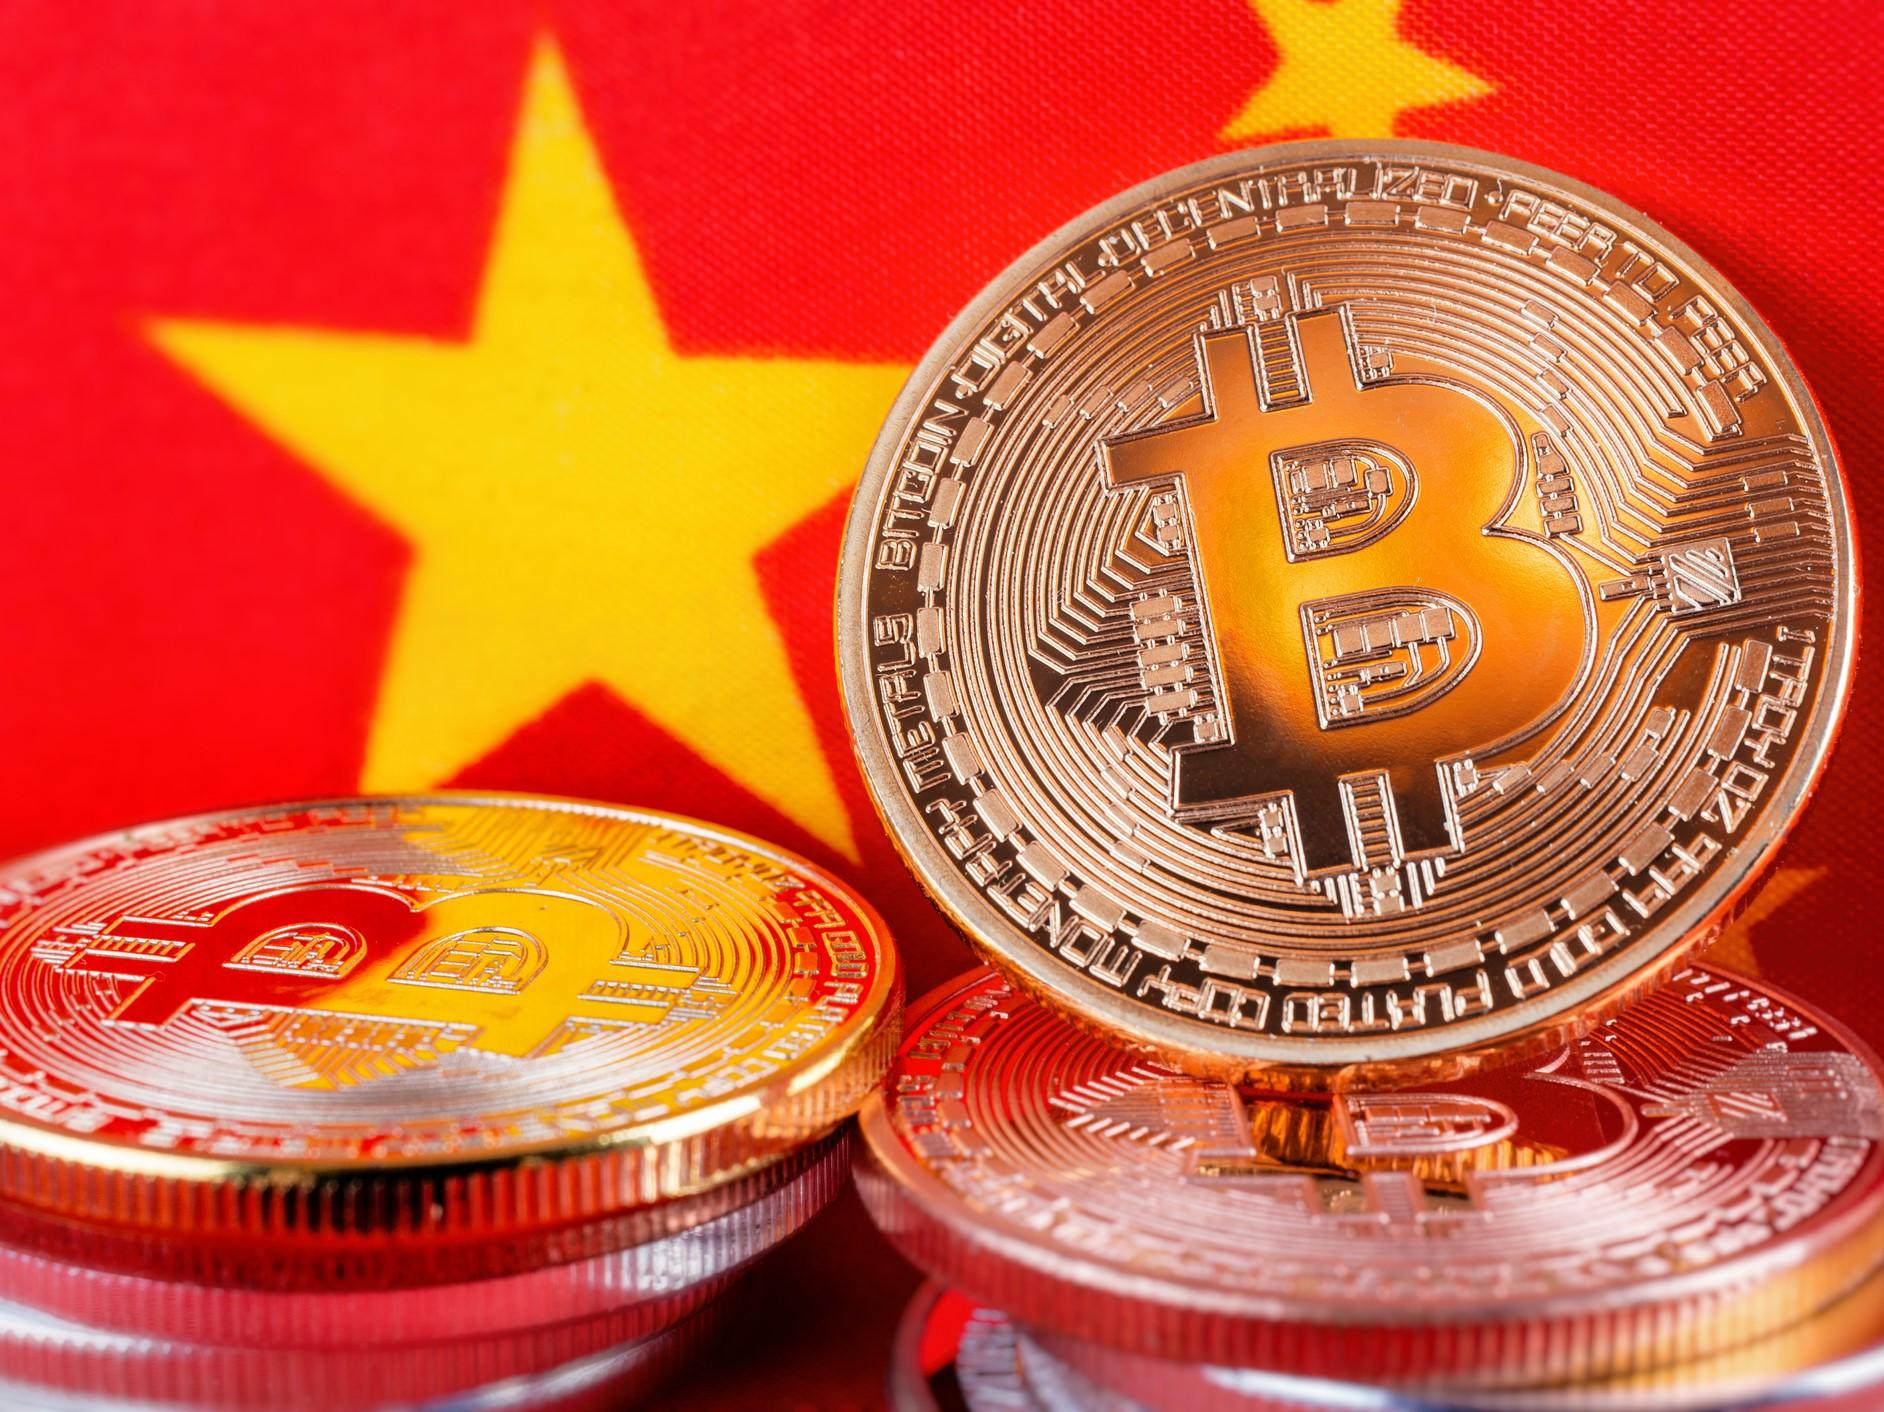 China bans anti-blockchain sentiment as it prepares for launch of state cryptocurrency